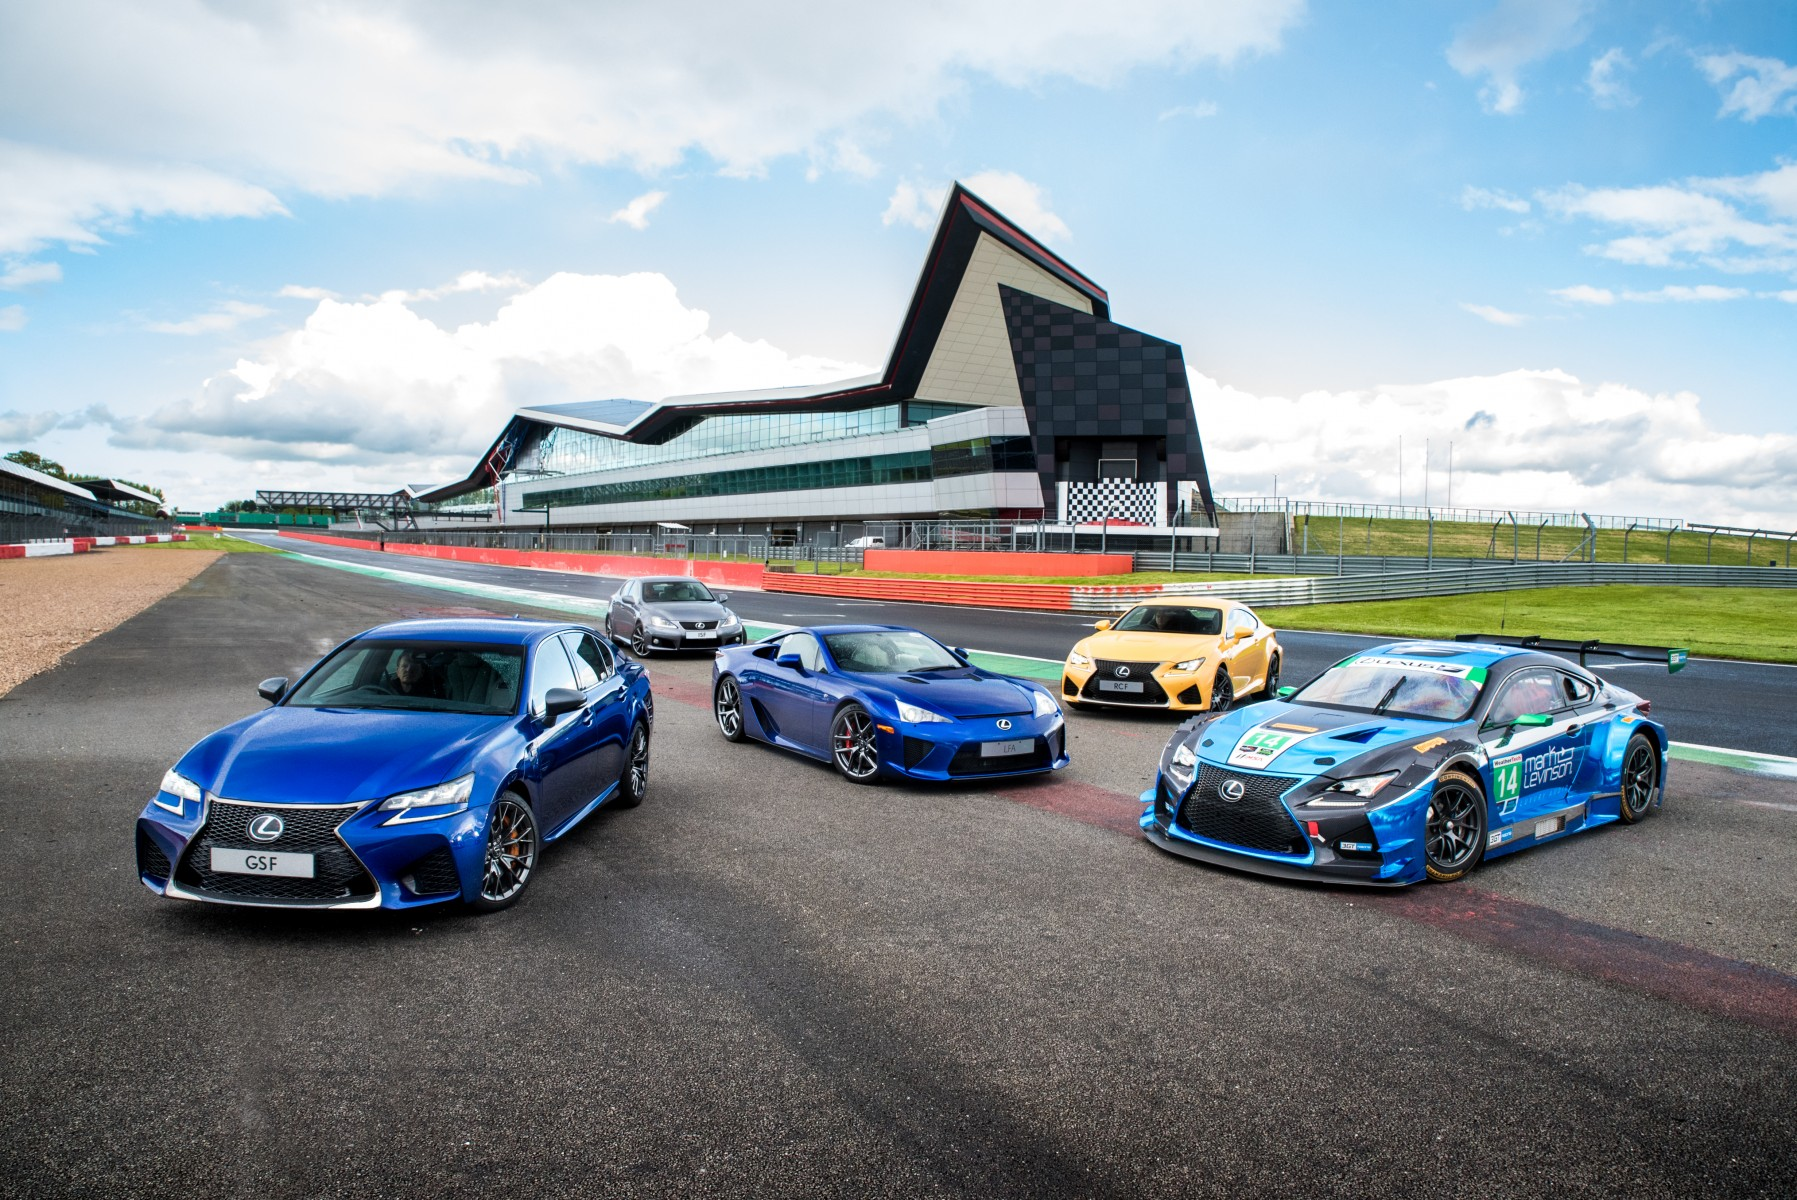 Lexus F line-up 2018